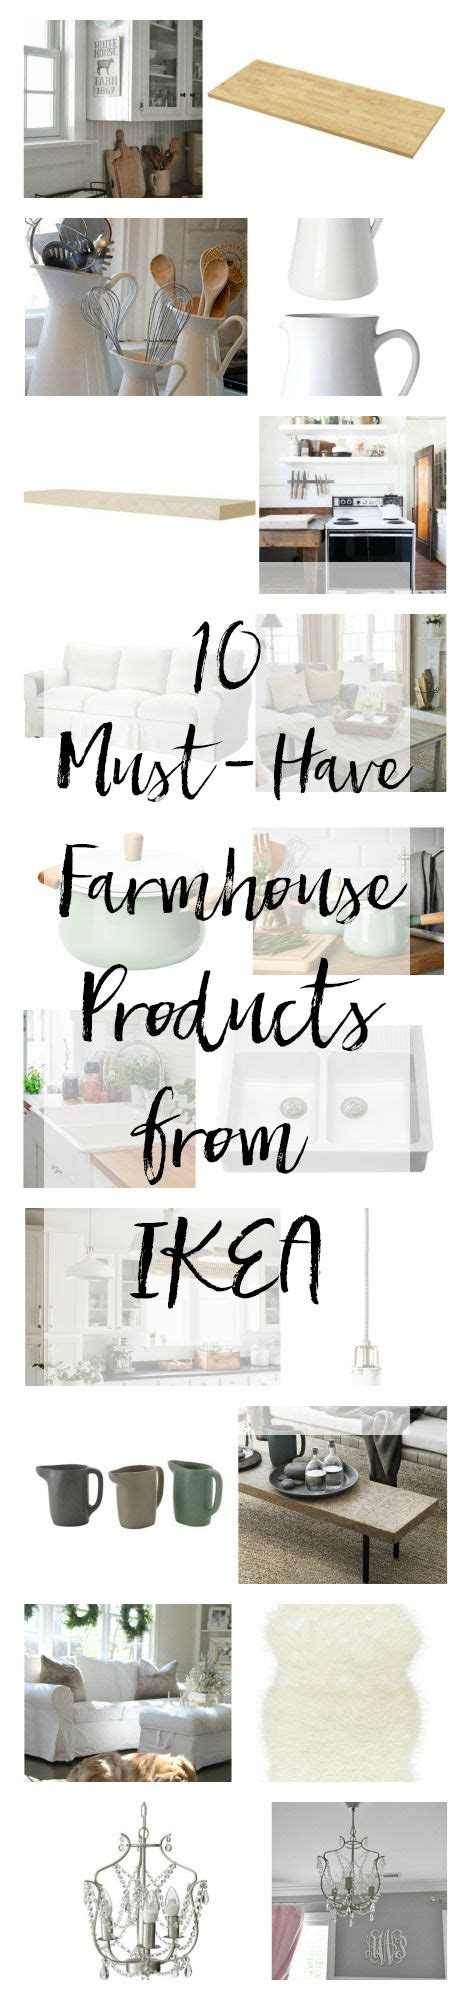 my 10 must have kitchen items and hey most of them would fit into a christmas stocking 146 best images about decorating my kitchen on pinterest